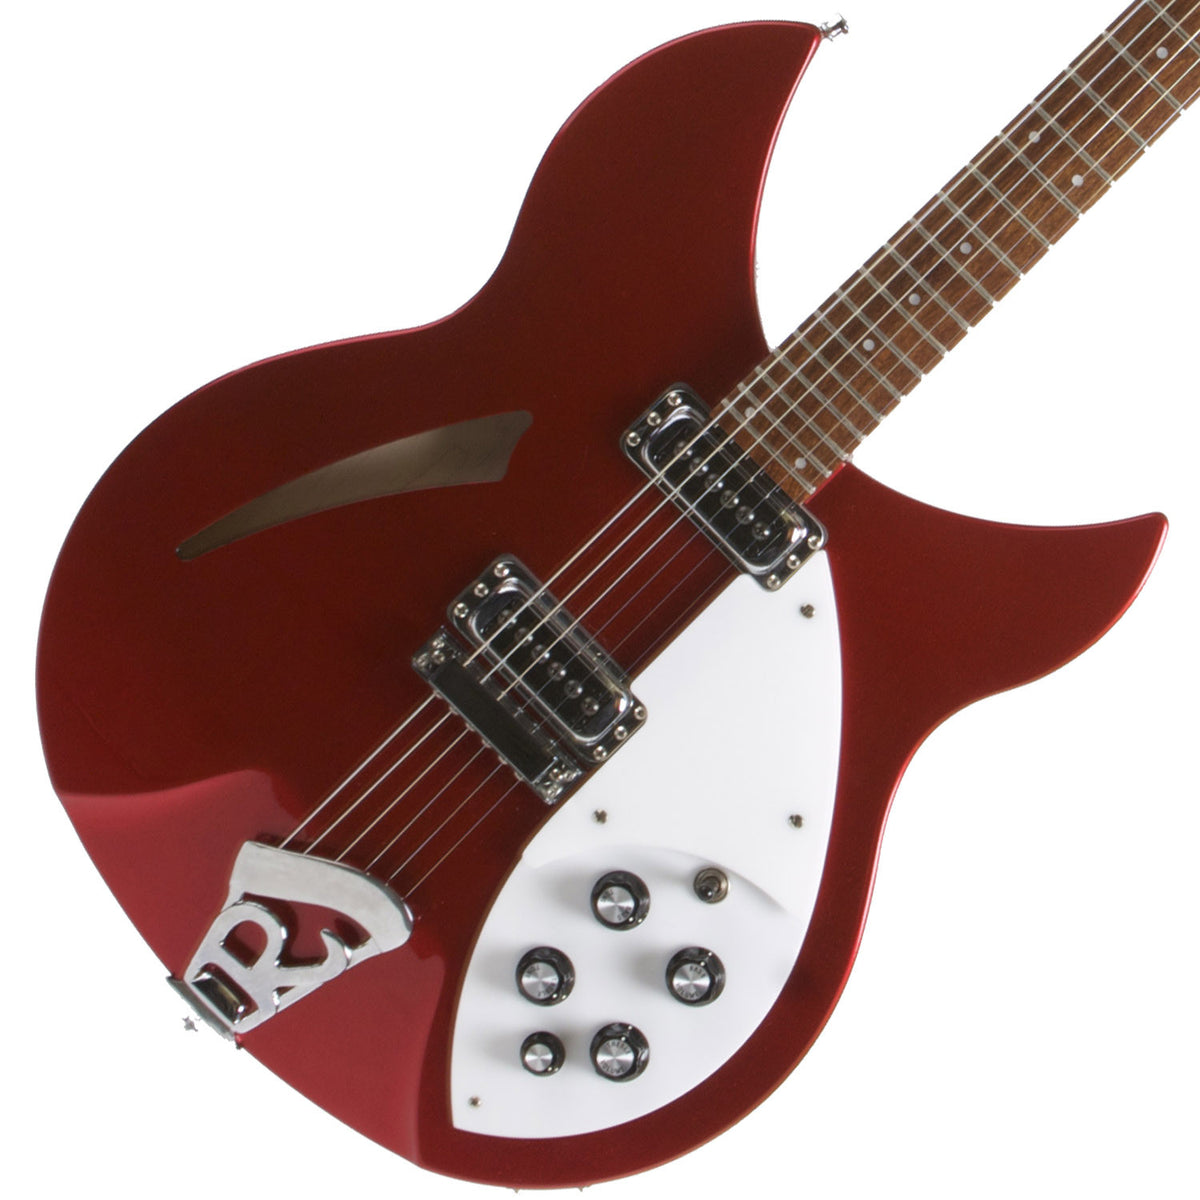 2013 Rickenbacker 330 Ruby Red - Garrett Park Guitars  - 1